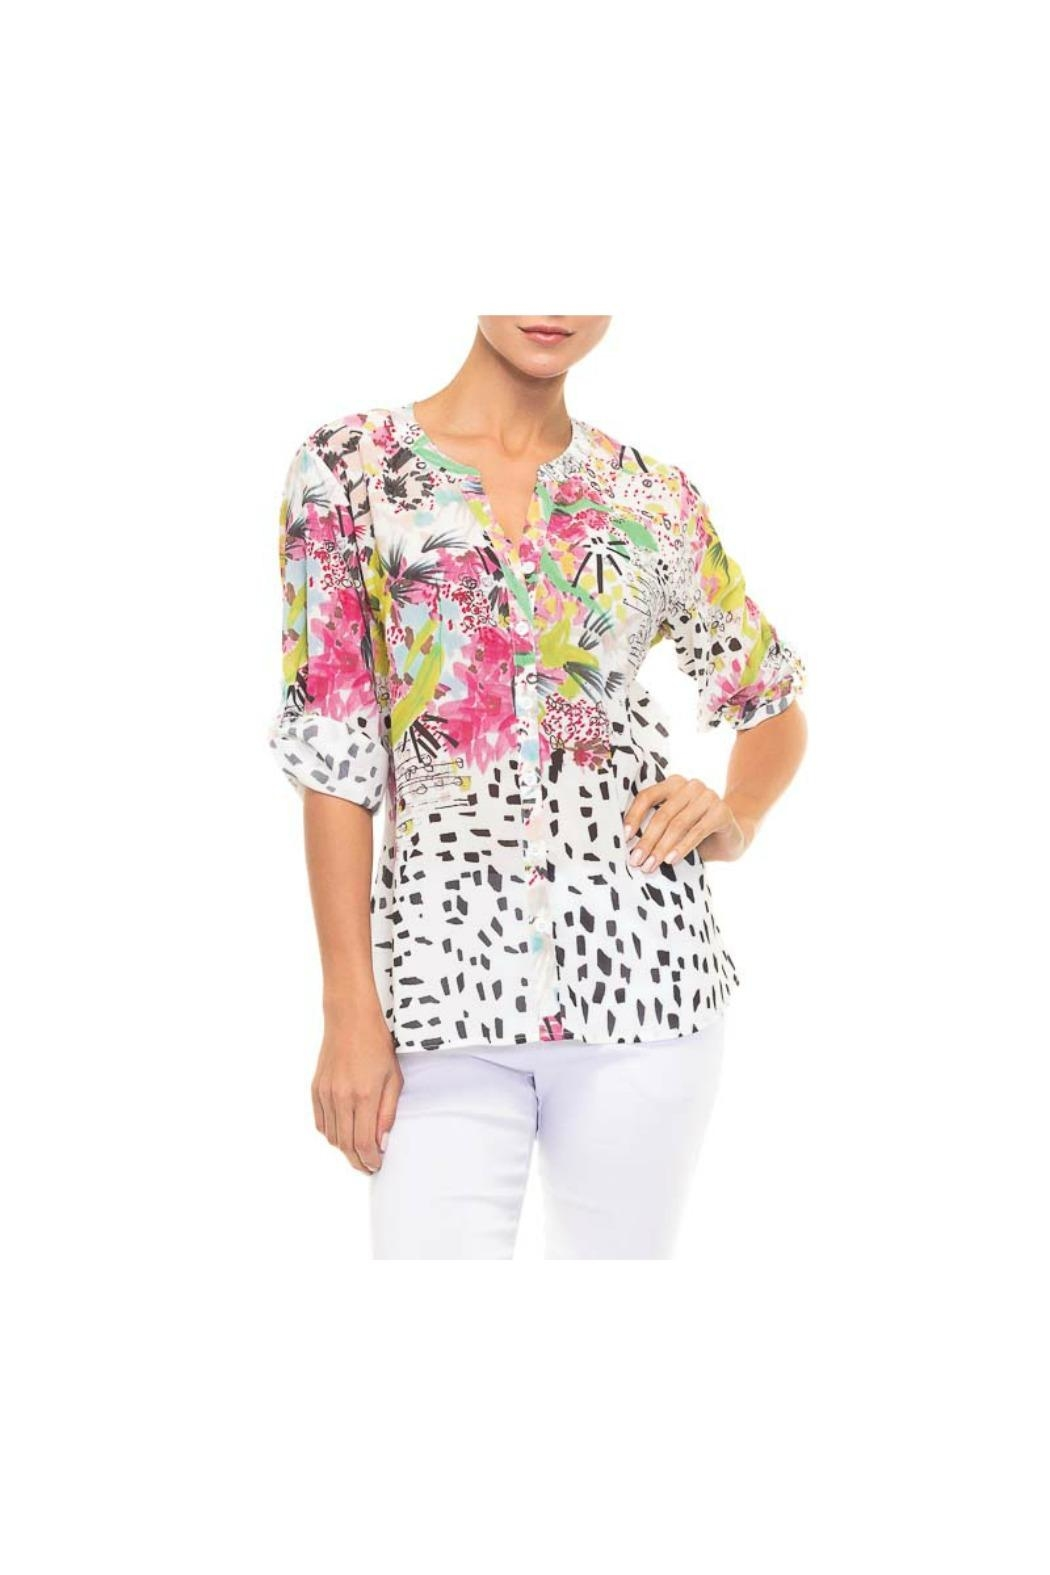 Alison Sheri Spotted Floral Blouse - Main Image